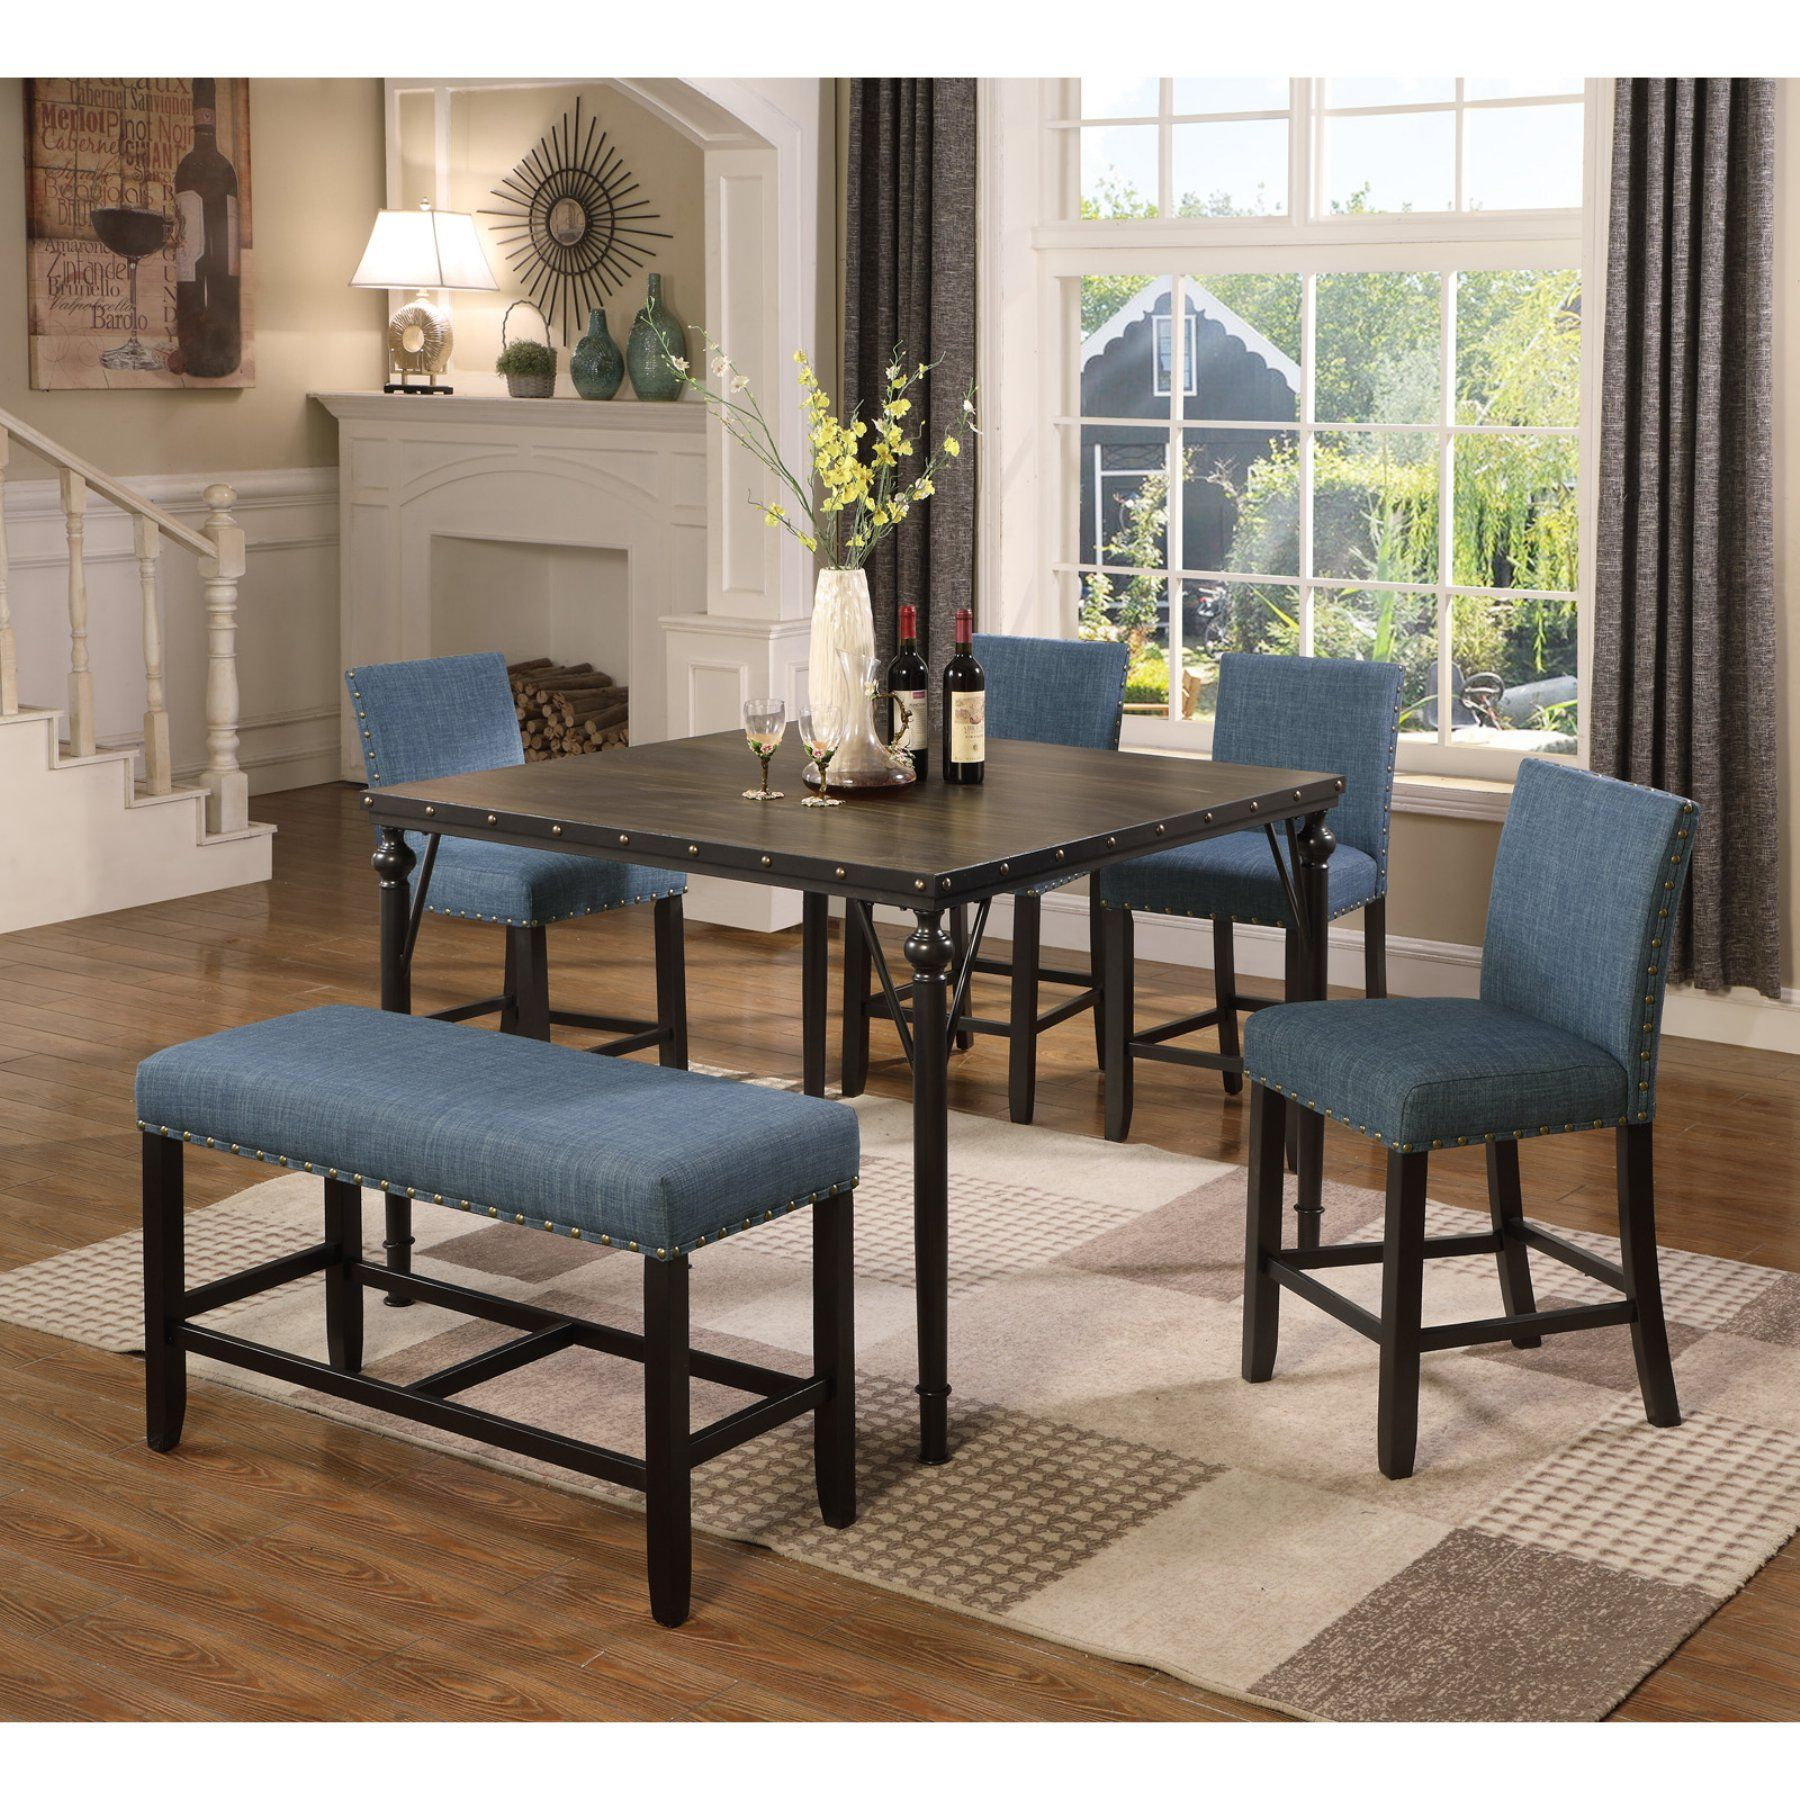 Swell Roundhill Furniture Biony 6 Piece Square Counter Height Andrewgaddart Wooden Chair Designs For Living Room Andrewgaddartcom